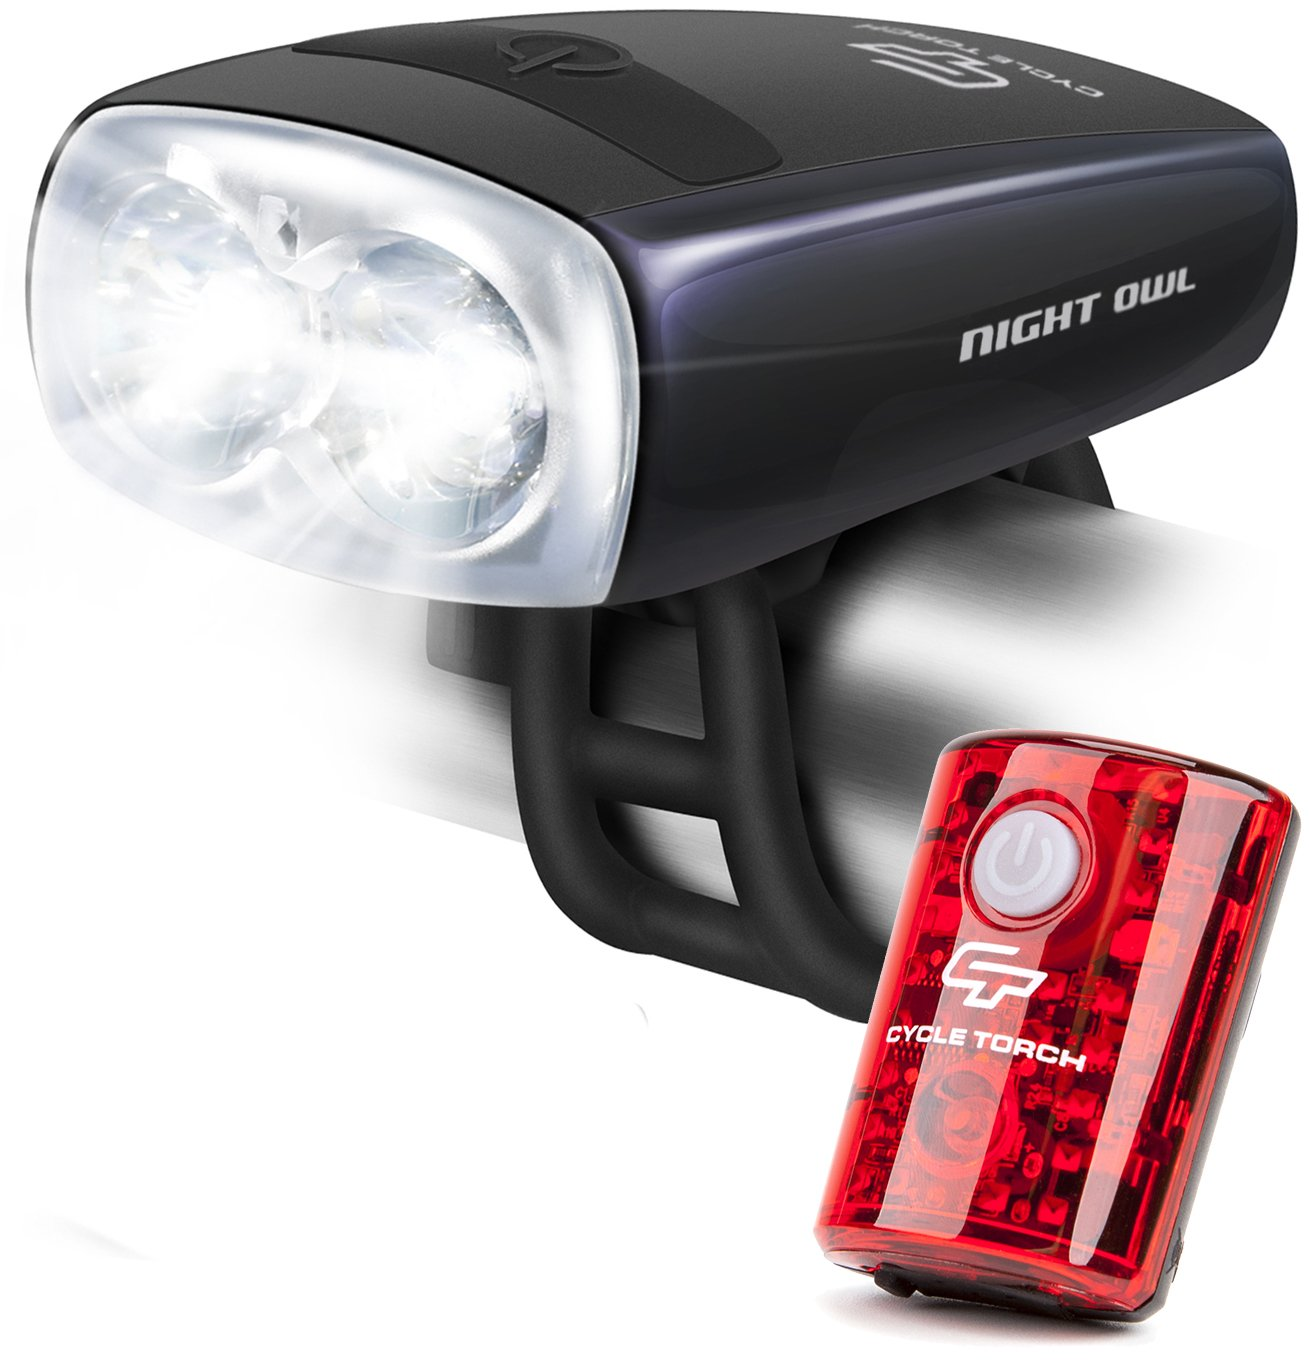 Cycle Torch Night Owl USB Rechargeable Bike Light Set, Perfect Commuter Safety Front and Back Bicycle Light LED Combo Free Bright Tail Light – Compatible with Mountain, Road, Kids City Bicycles